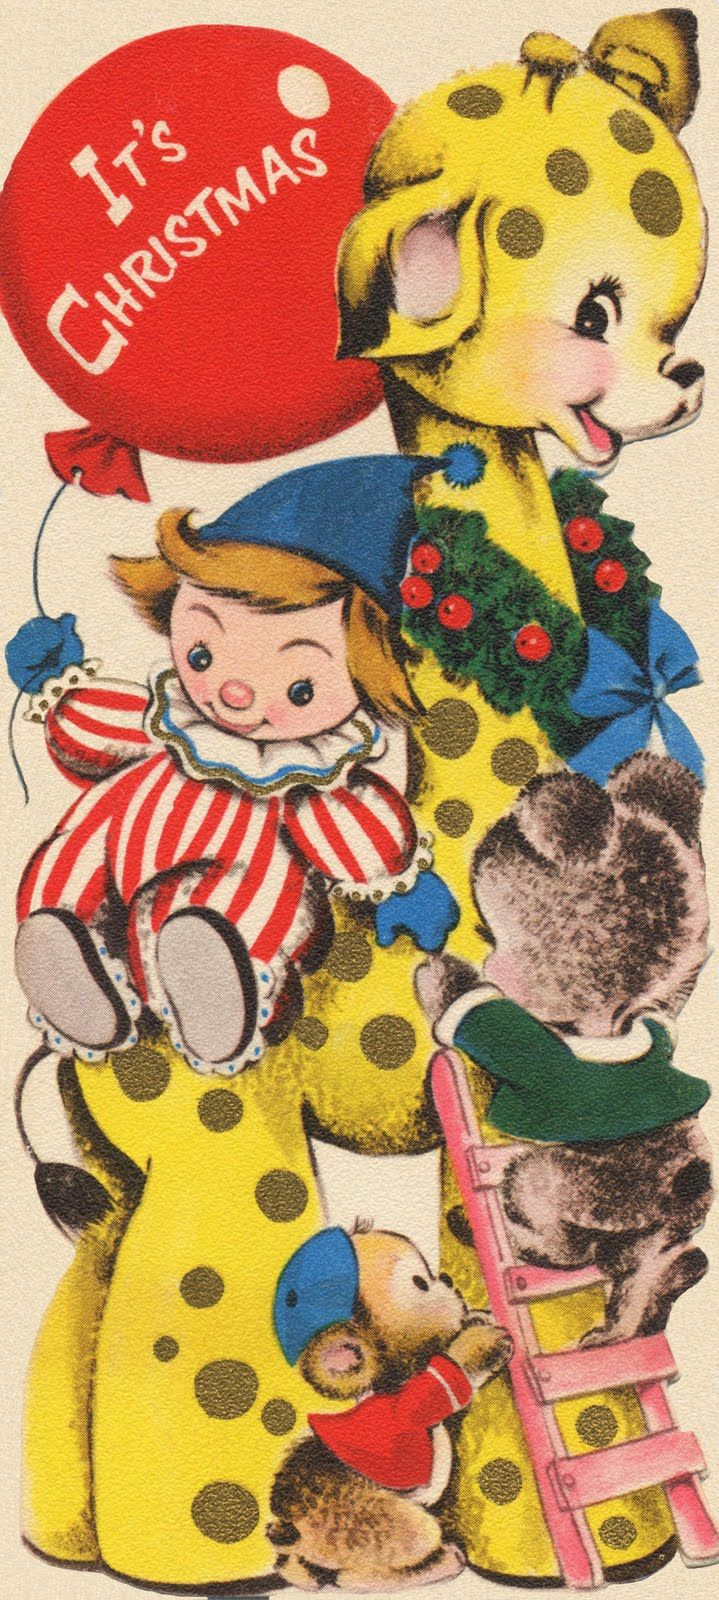 Retro Christmas Toy : Best vintage xmas cards images on pinterest